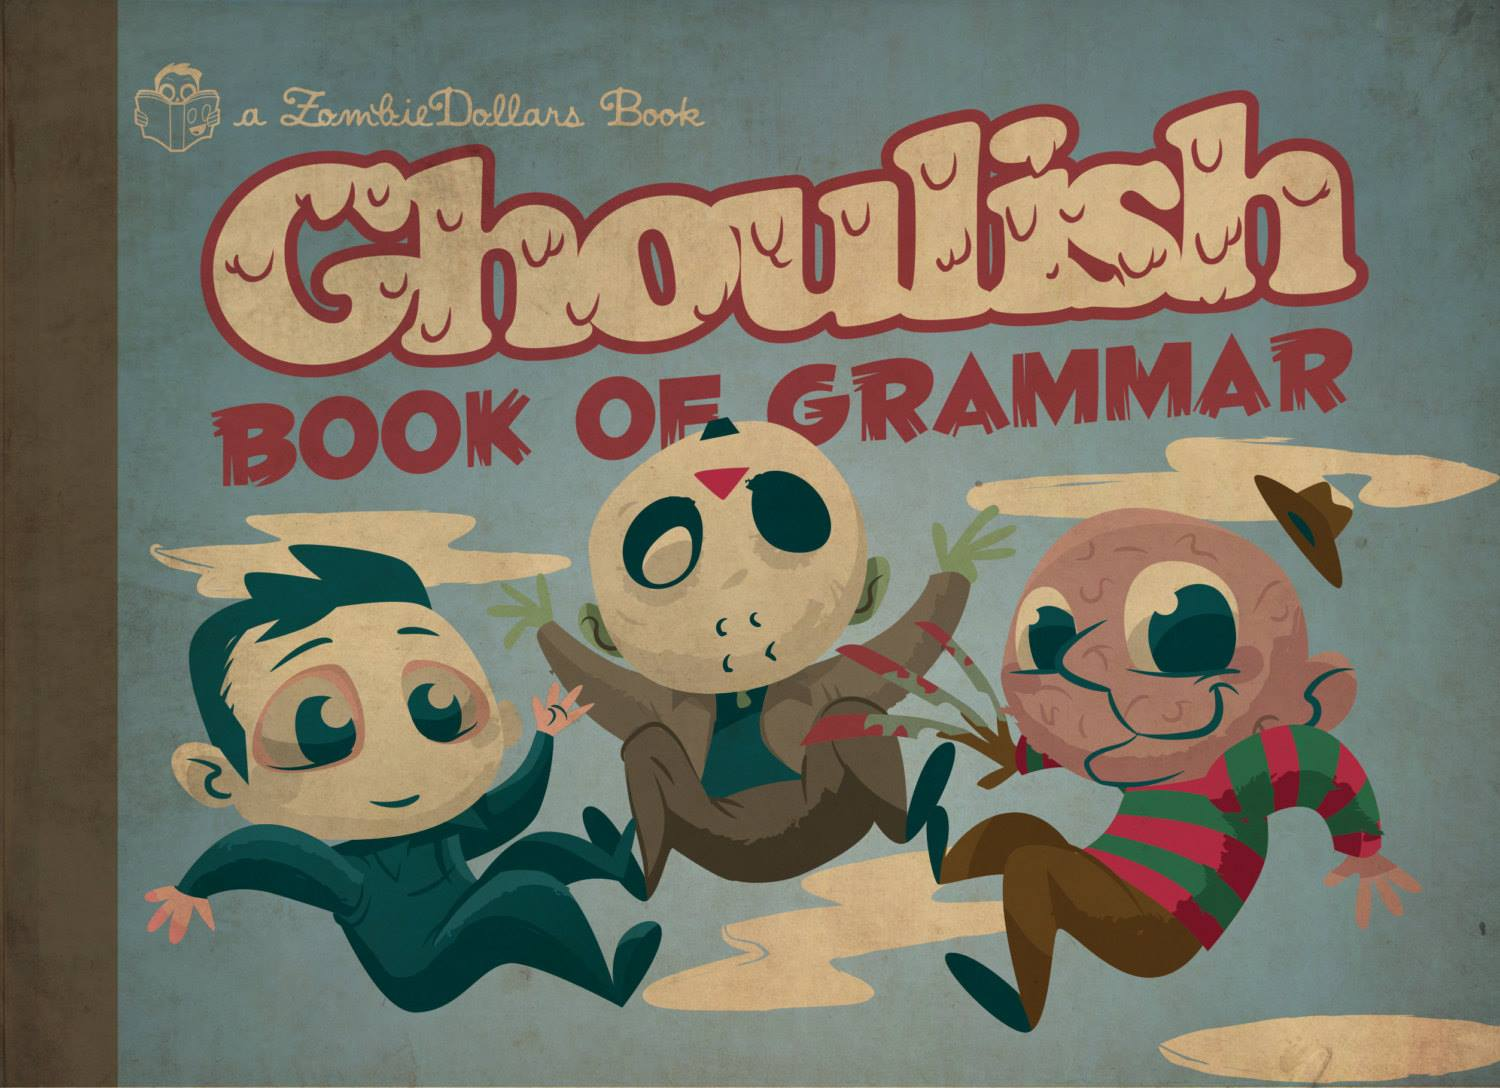 Ghoulish Book of Grammar